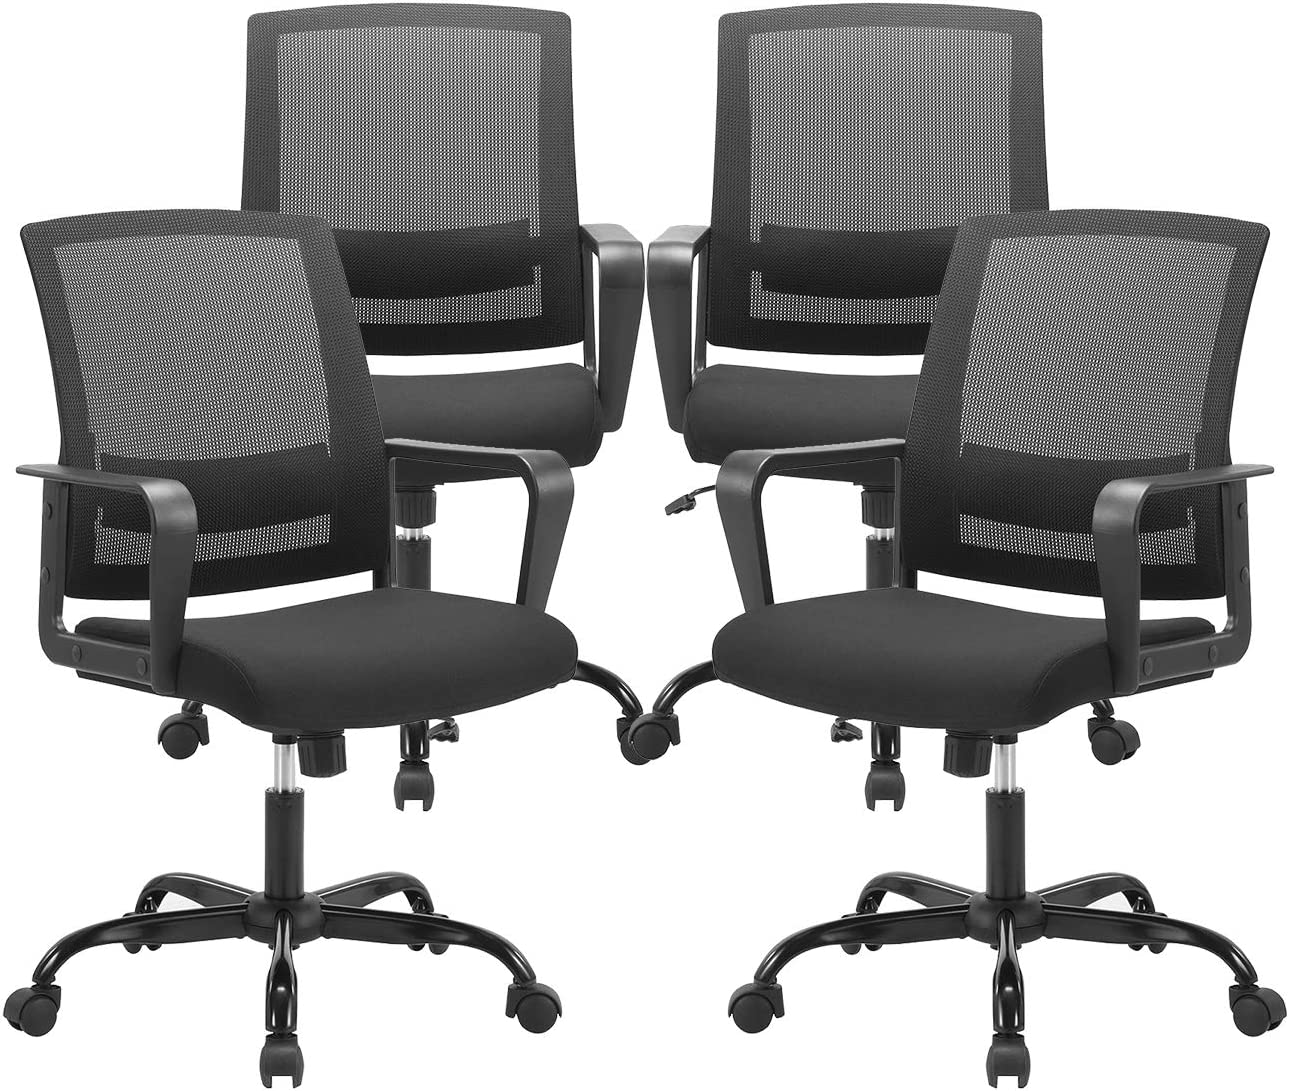 CLATINA Ergonomic Rolling Mesh Desk Chair with Executive Lumbar Support and Adjustable Swivel Design for Home Office Computer Black 4 Pack